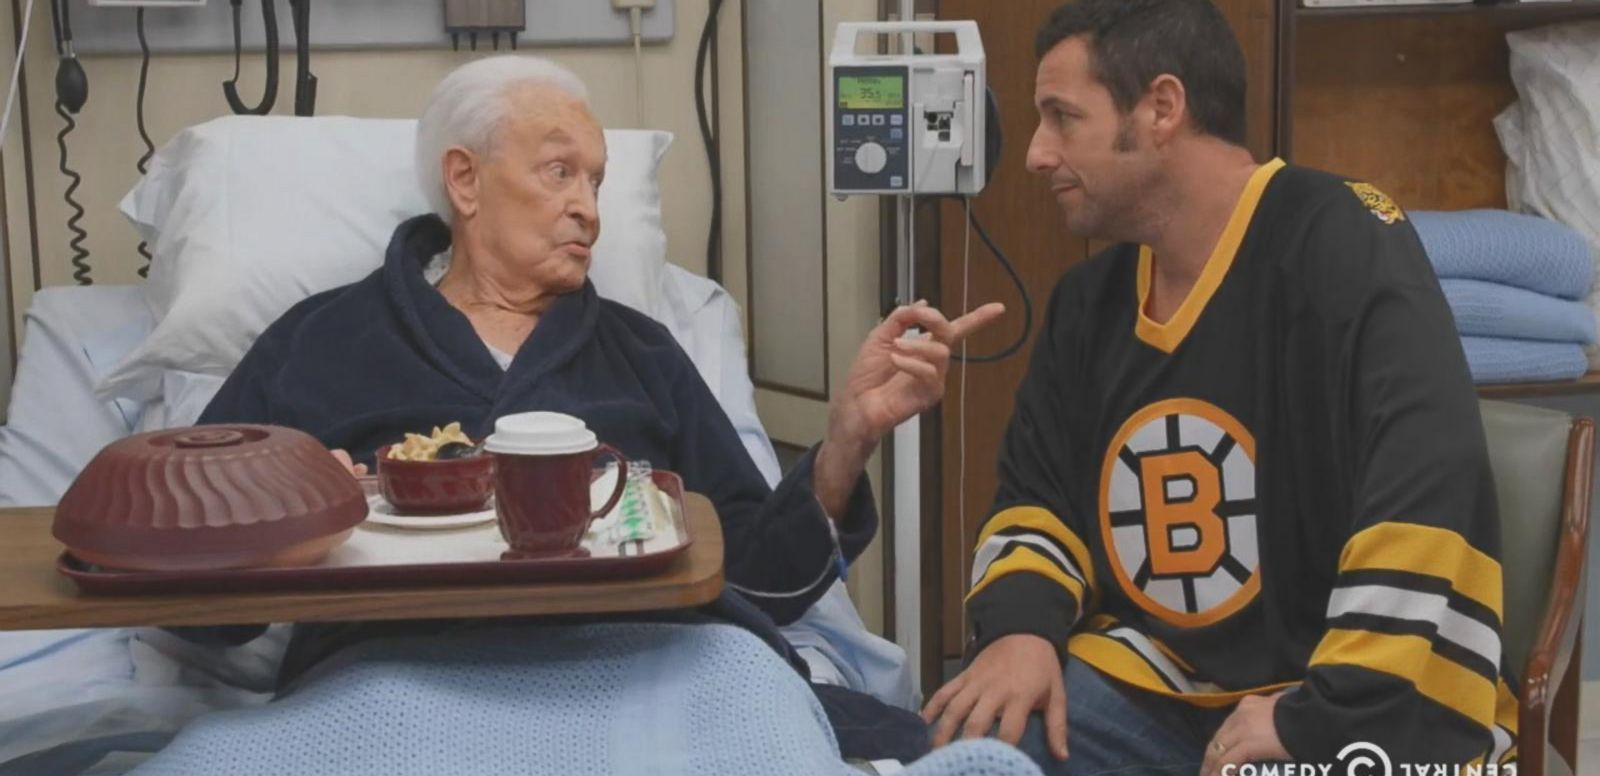 VIDEO: Adam Sandler and Bob Barker Recreated Their 'Happy Gilmore' Fight